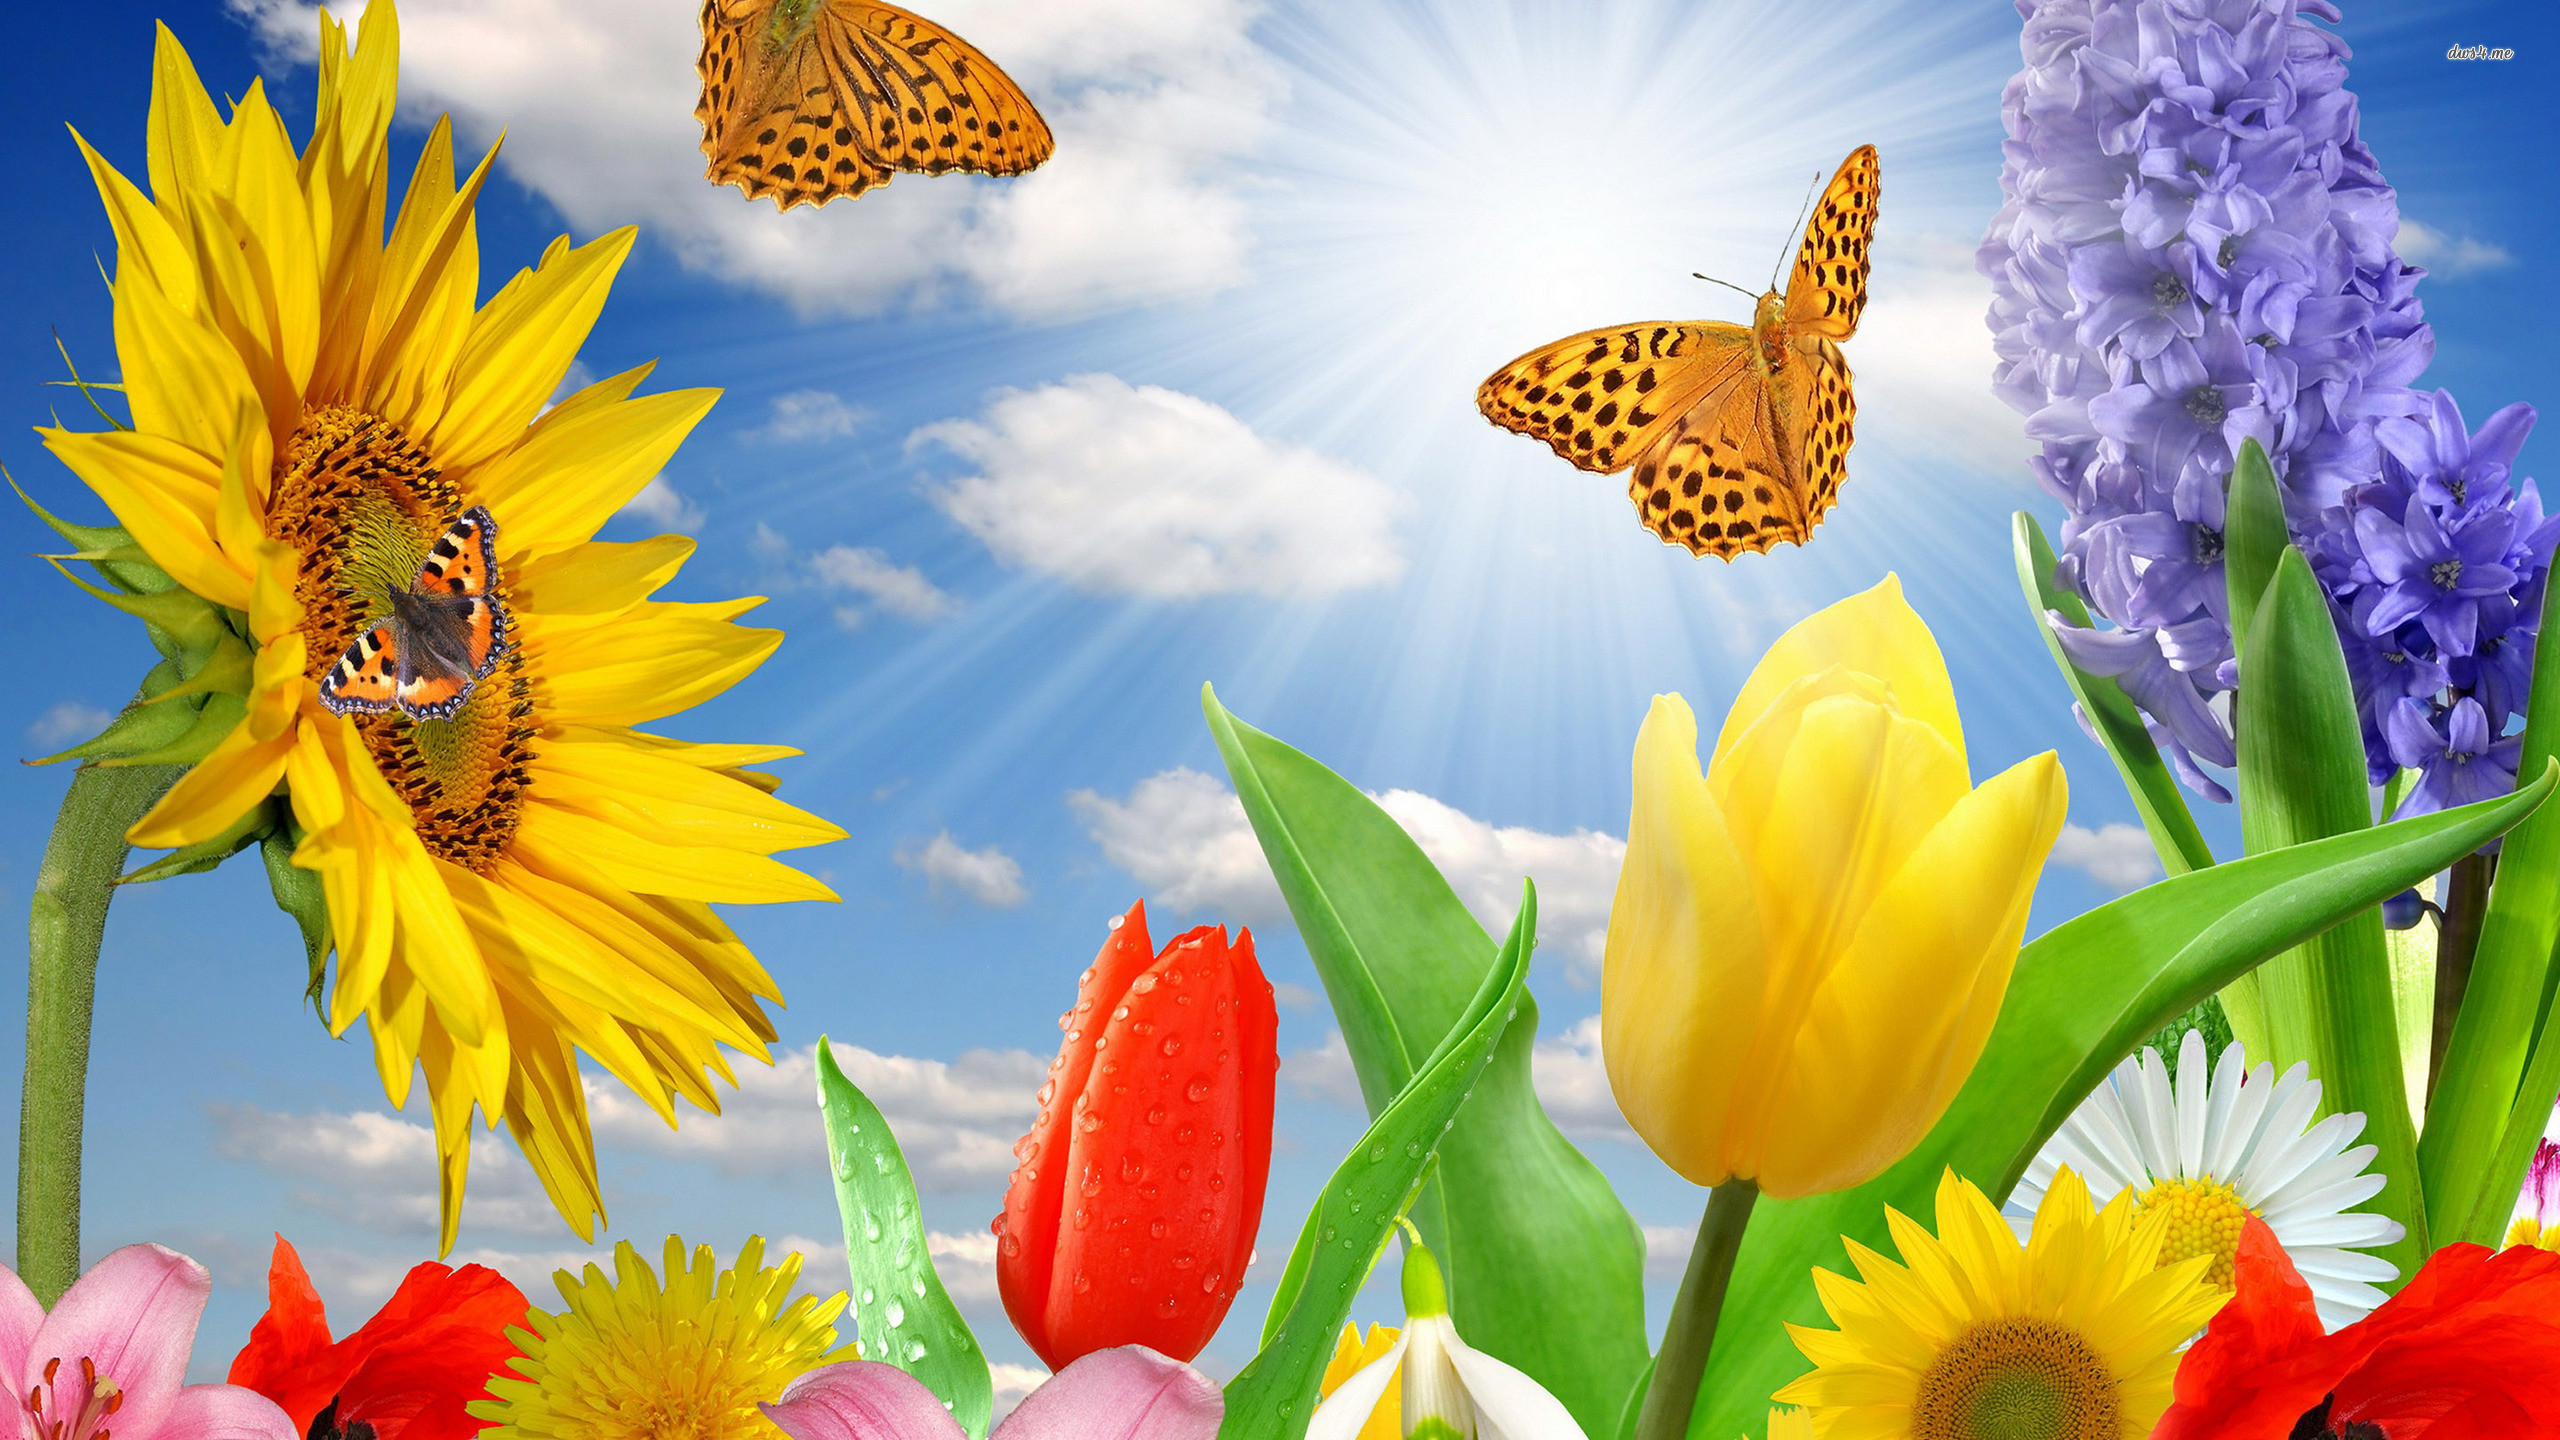 2560x1440 spring-flowers-and-butterflies-background-hd-cool-7 » spring-flowers -and-butterflies-background-hd-cool-7